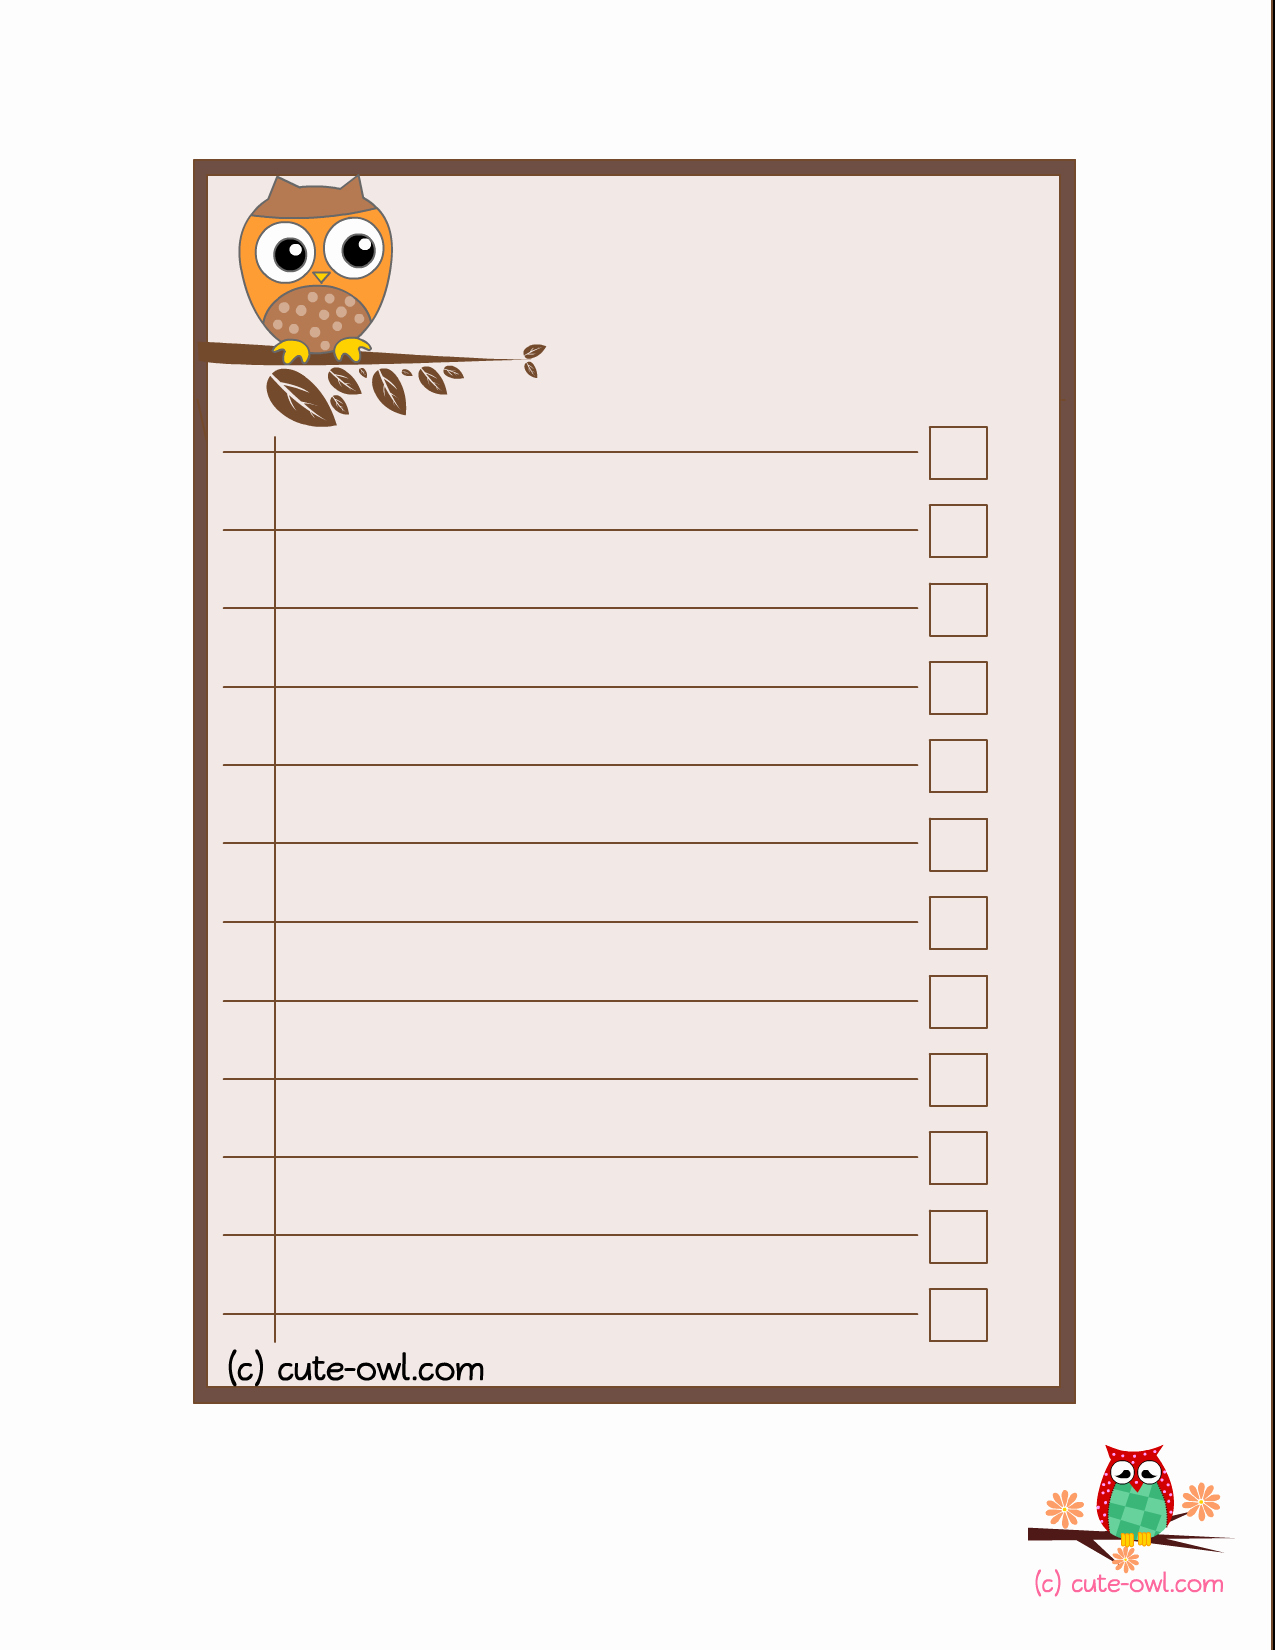 Cool to Do List Template Awesome Free Printable Things to Do List Template Cool to Do List